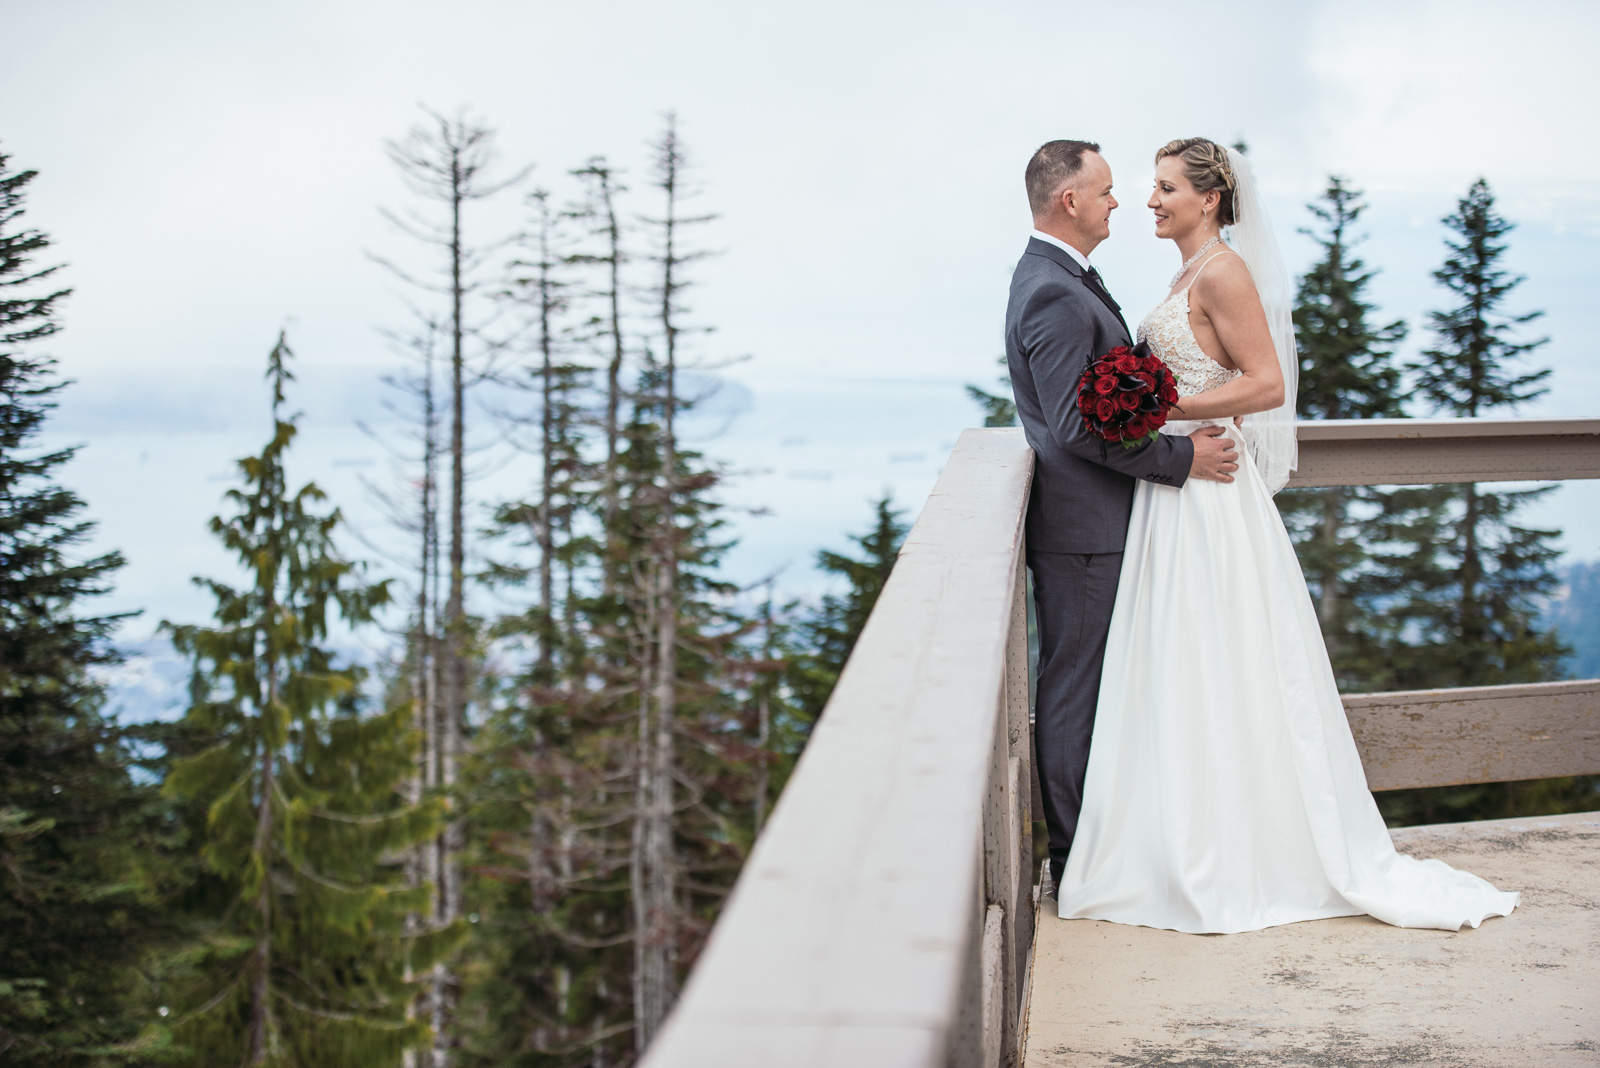 vancouver-island-wedding-photographers-grouse-mountain-winter-wedding-6.jpg